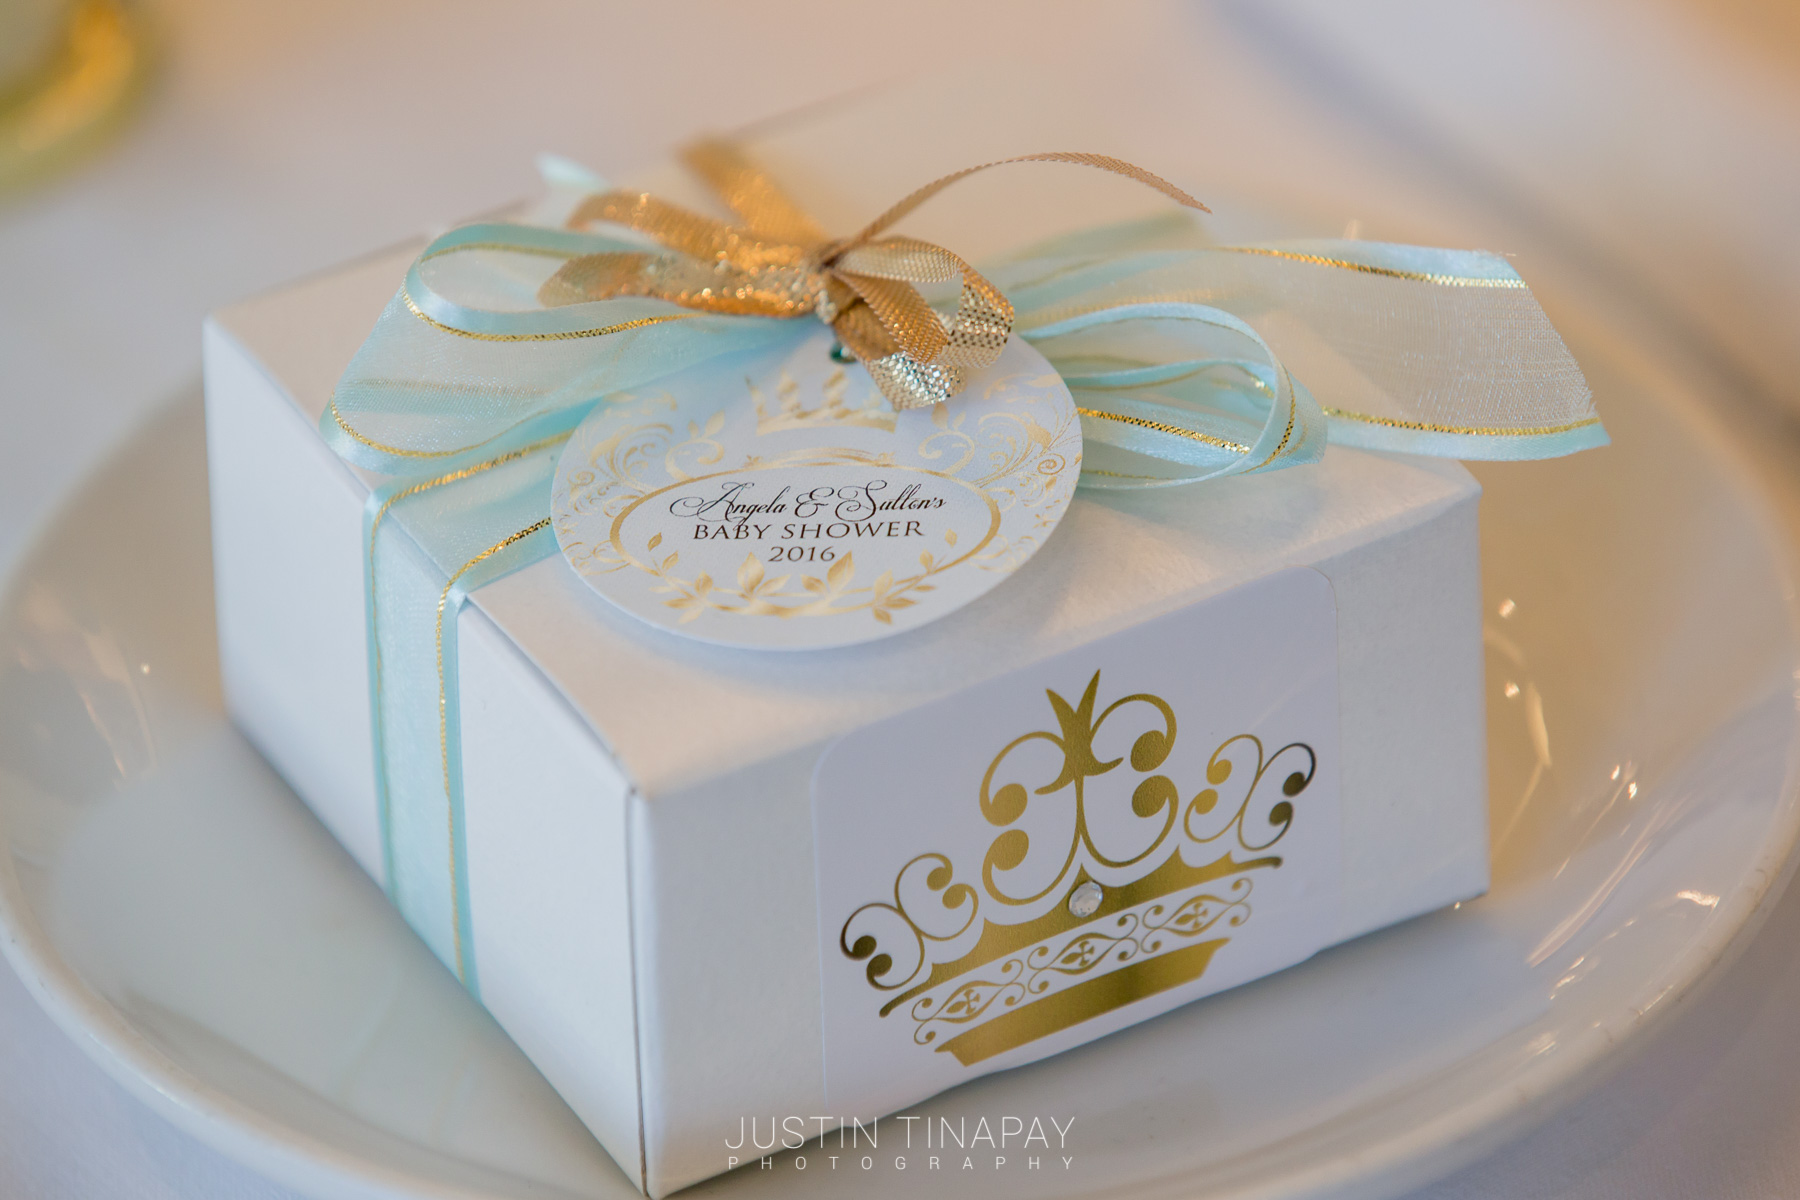 personalized favor box for a baby shower